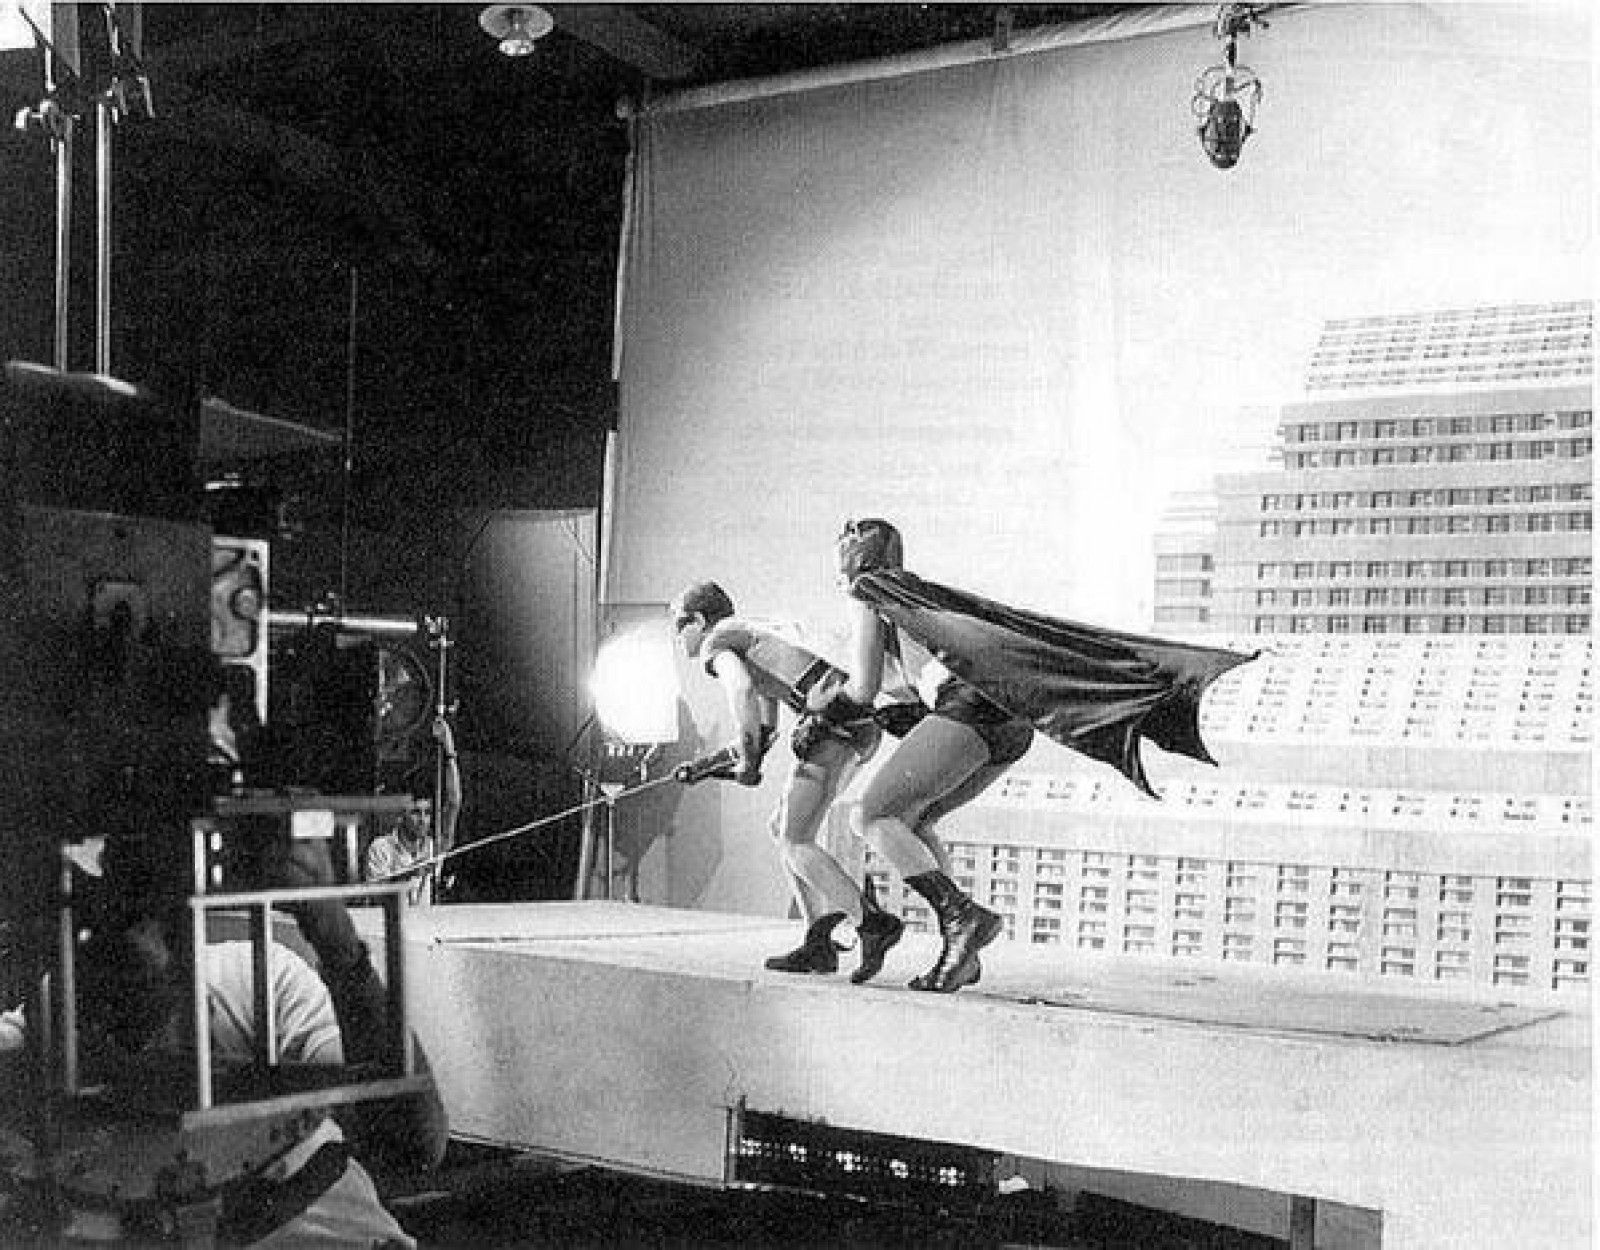 The making of Batman in 1966